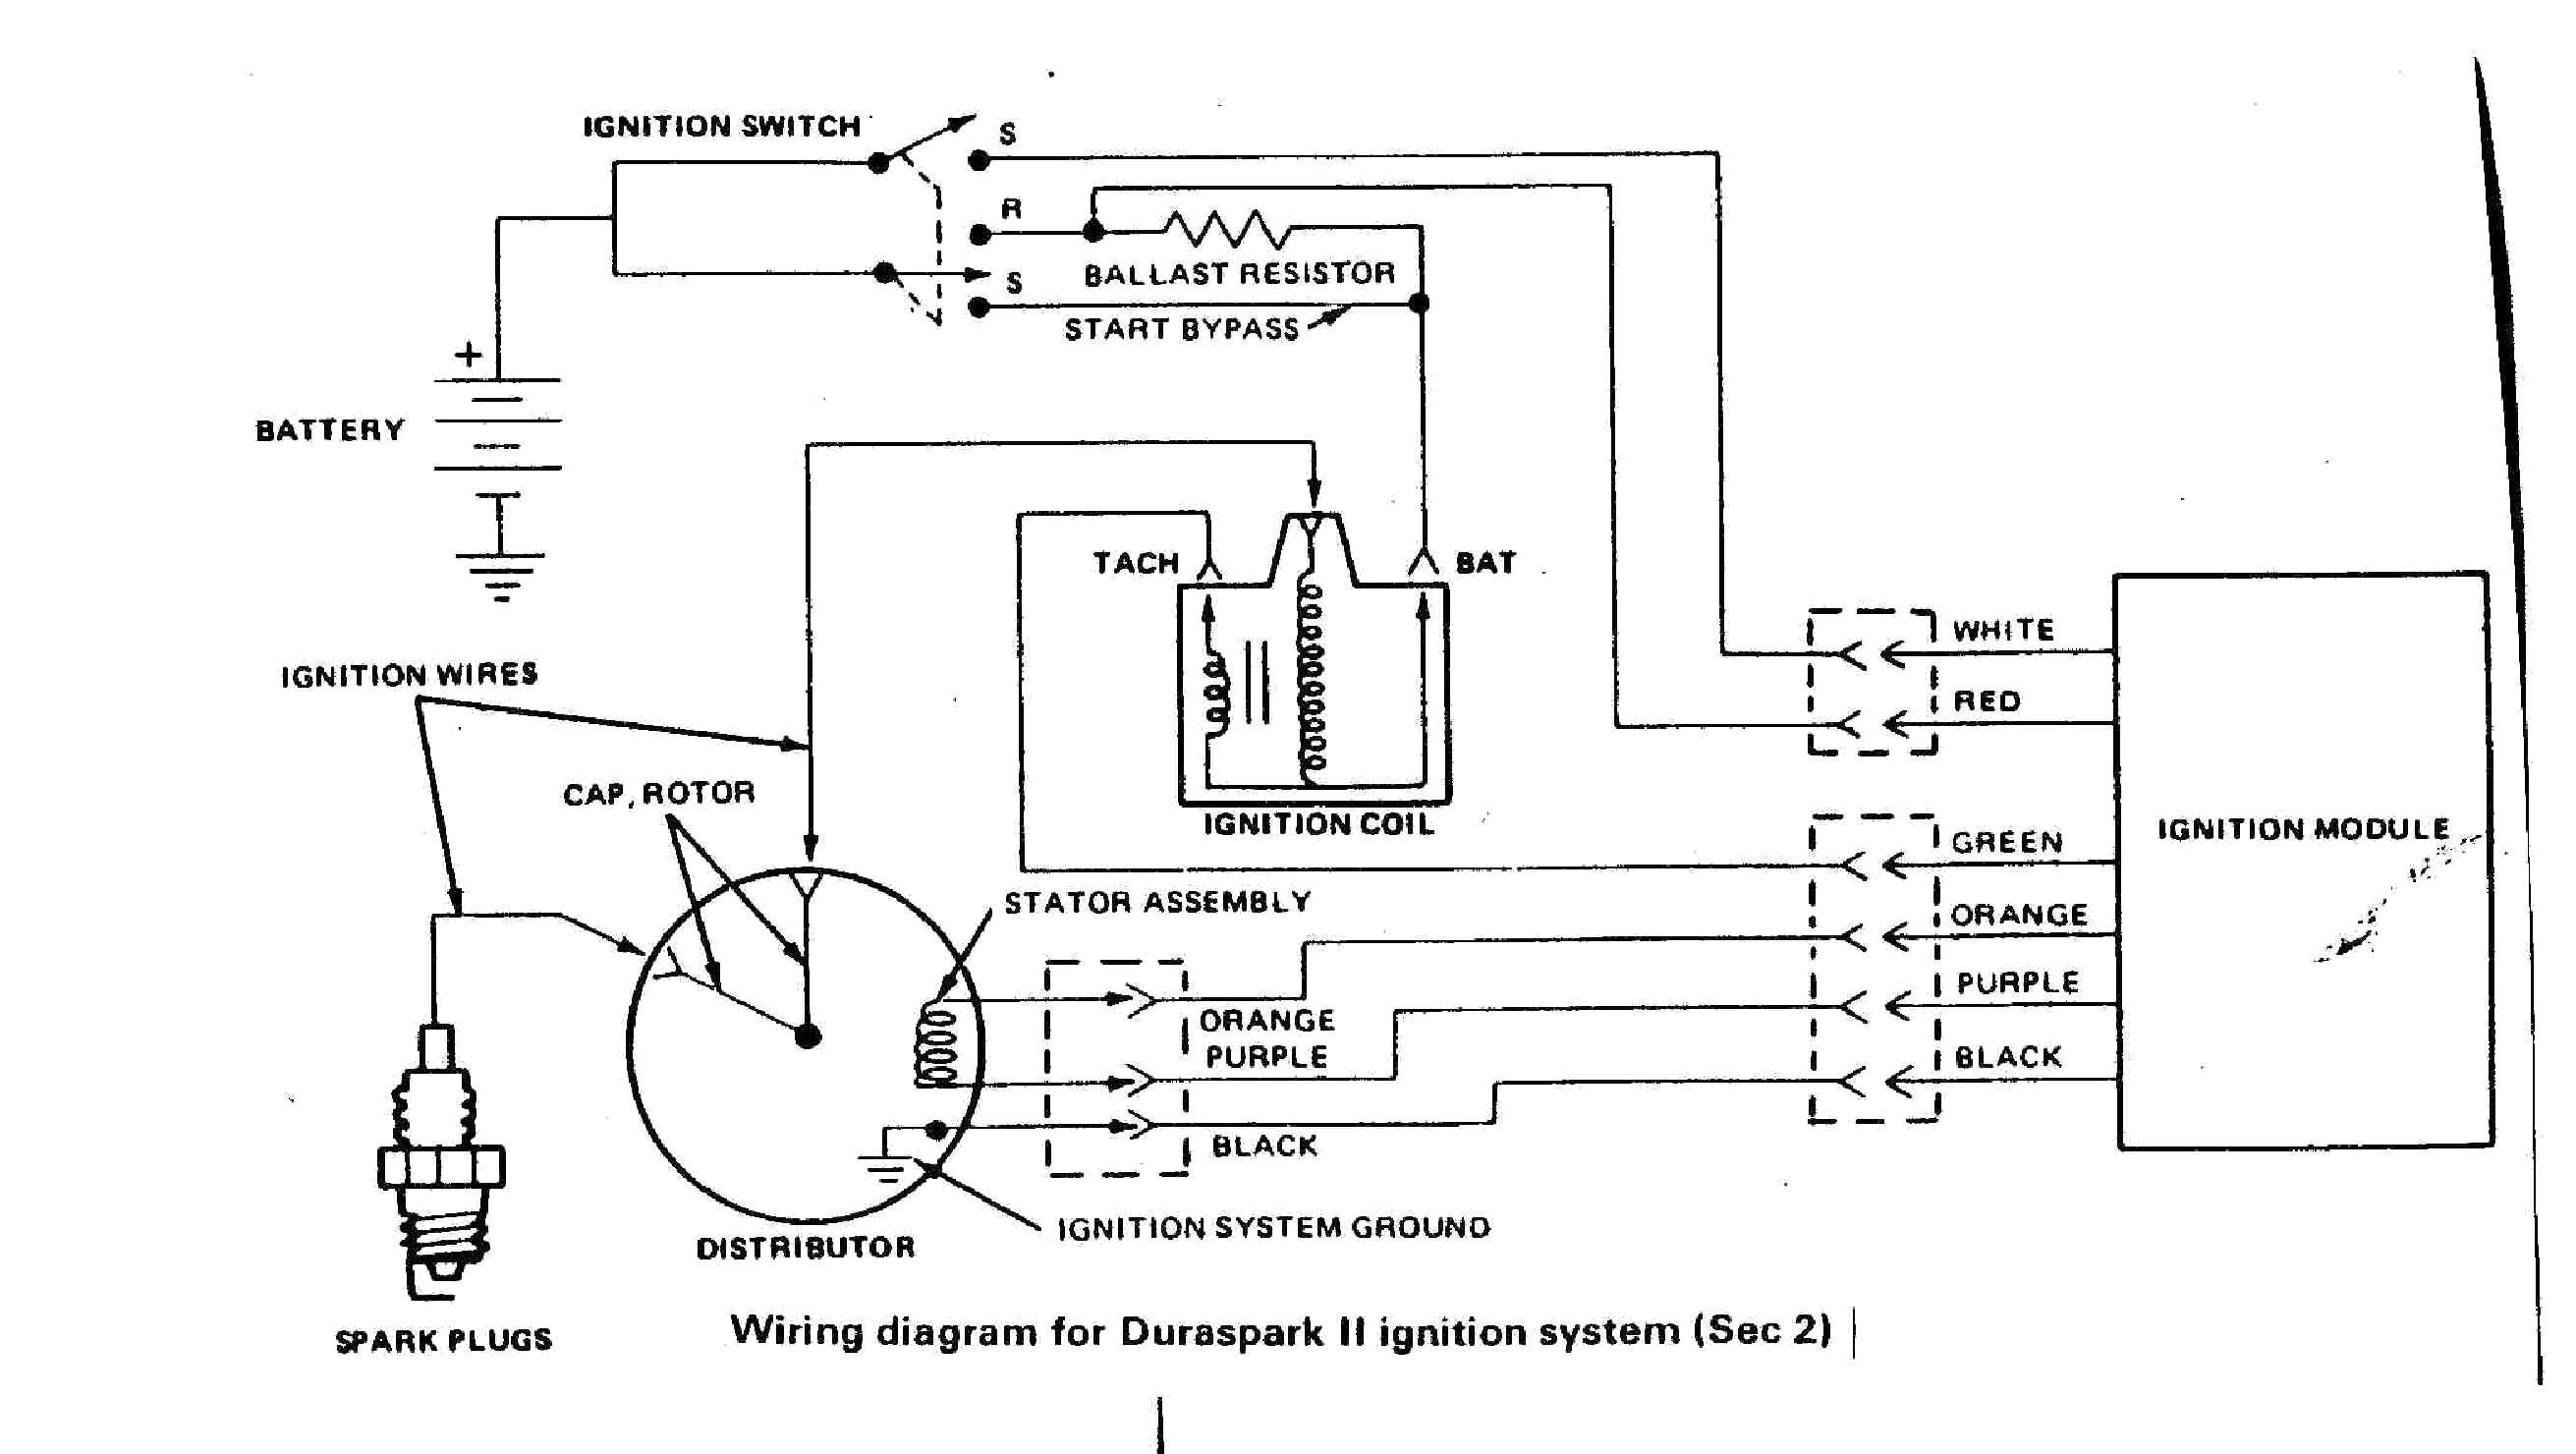 Magneto Ignition System Wiring Diagram Best Wiring Diagram For Ignition Switch Lawn Mower New Wiring Diagram